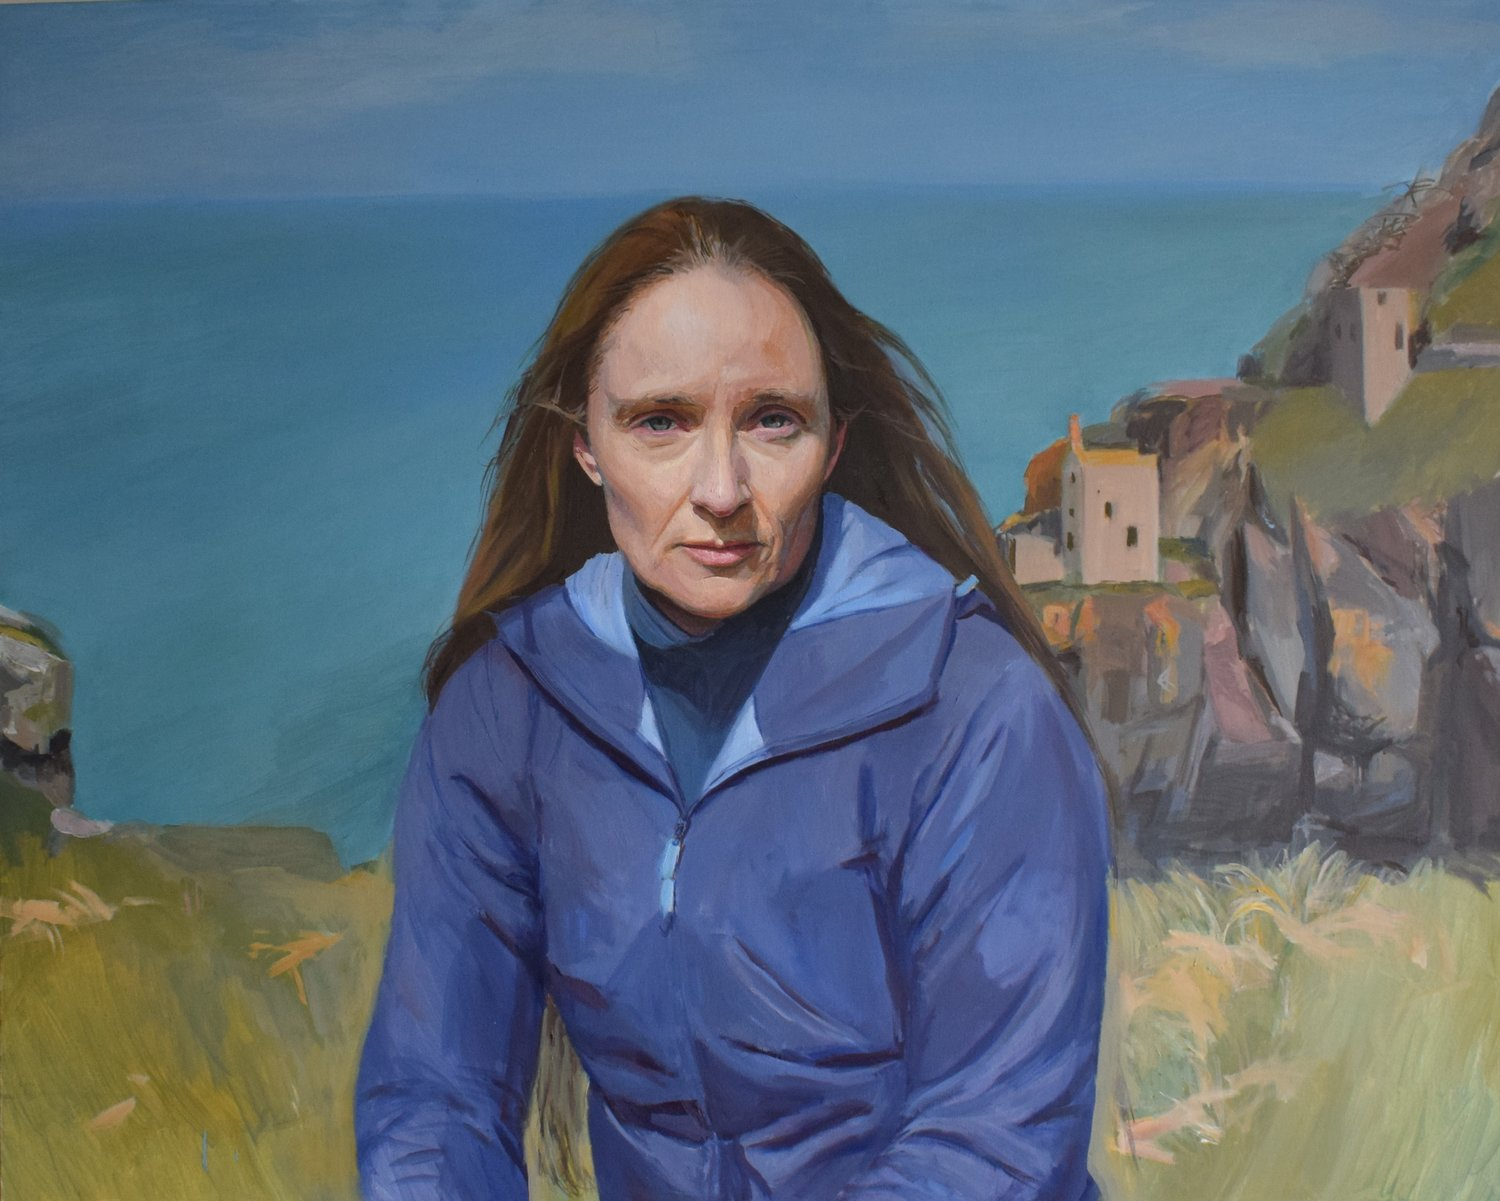 'Kathryn', Hero Johnson, Oil on canvas, 80 x 100 cm